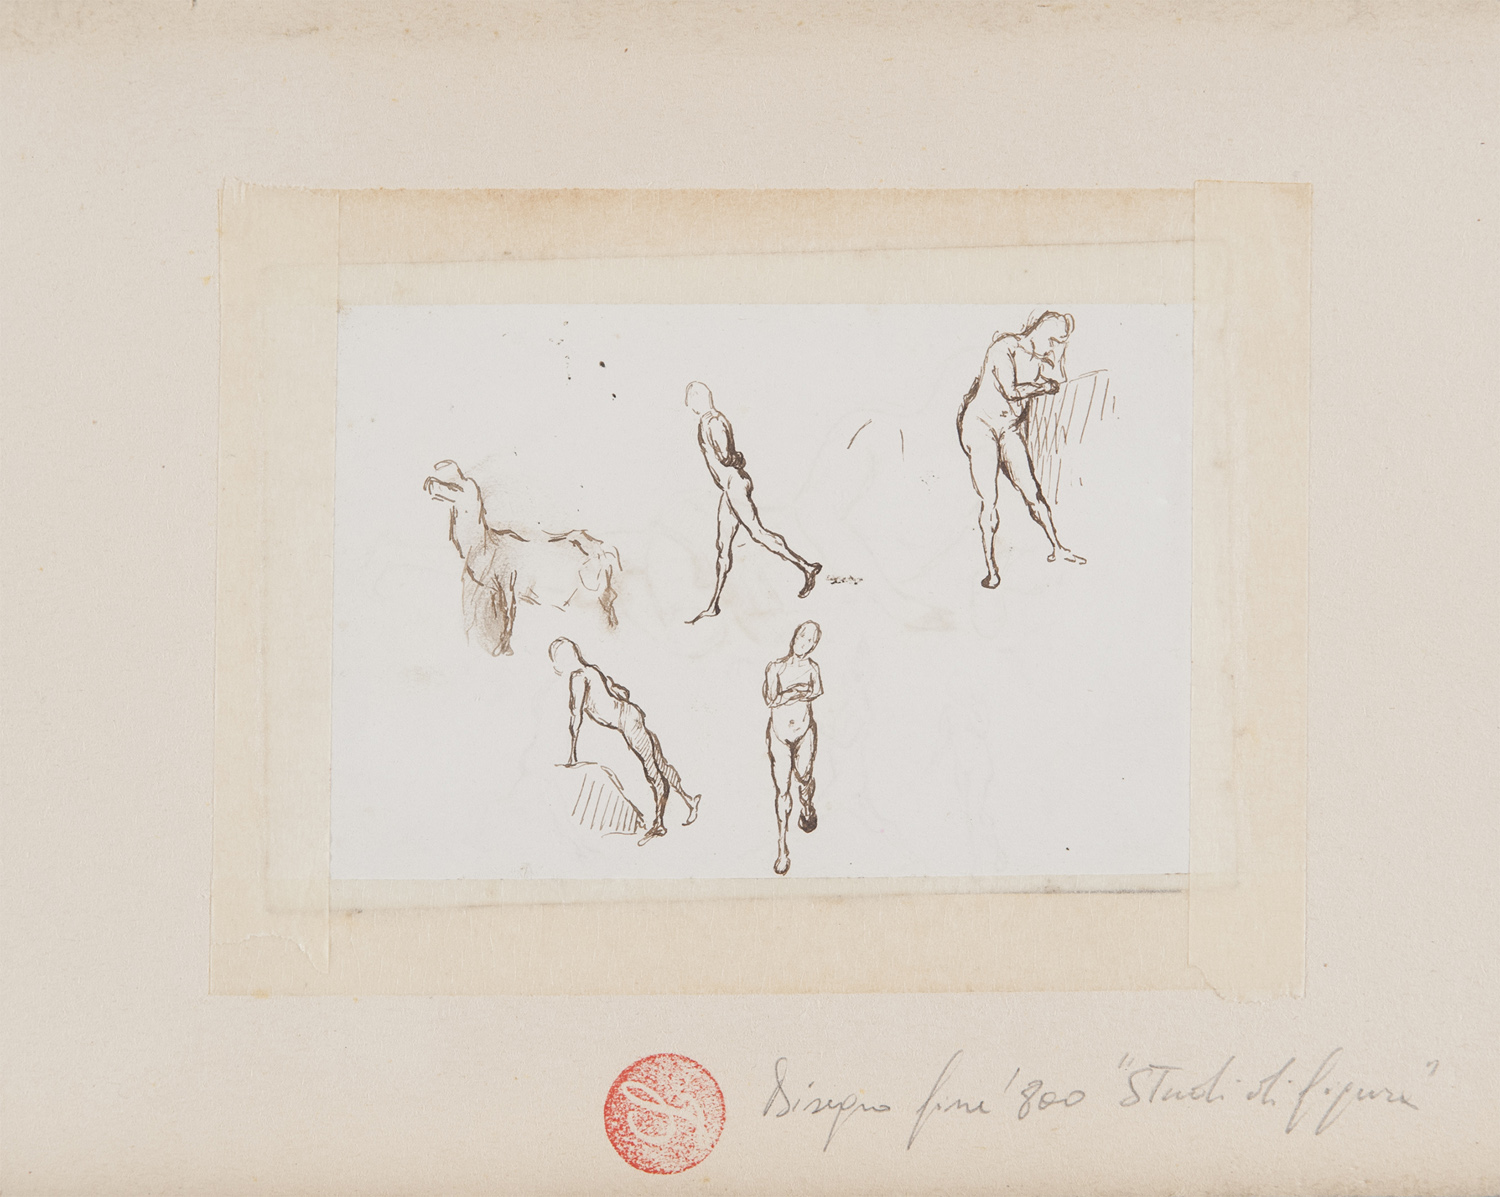 ITALIAN INK DRAWING EARLY 20TH CENTURY - Image 2 of 2